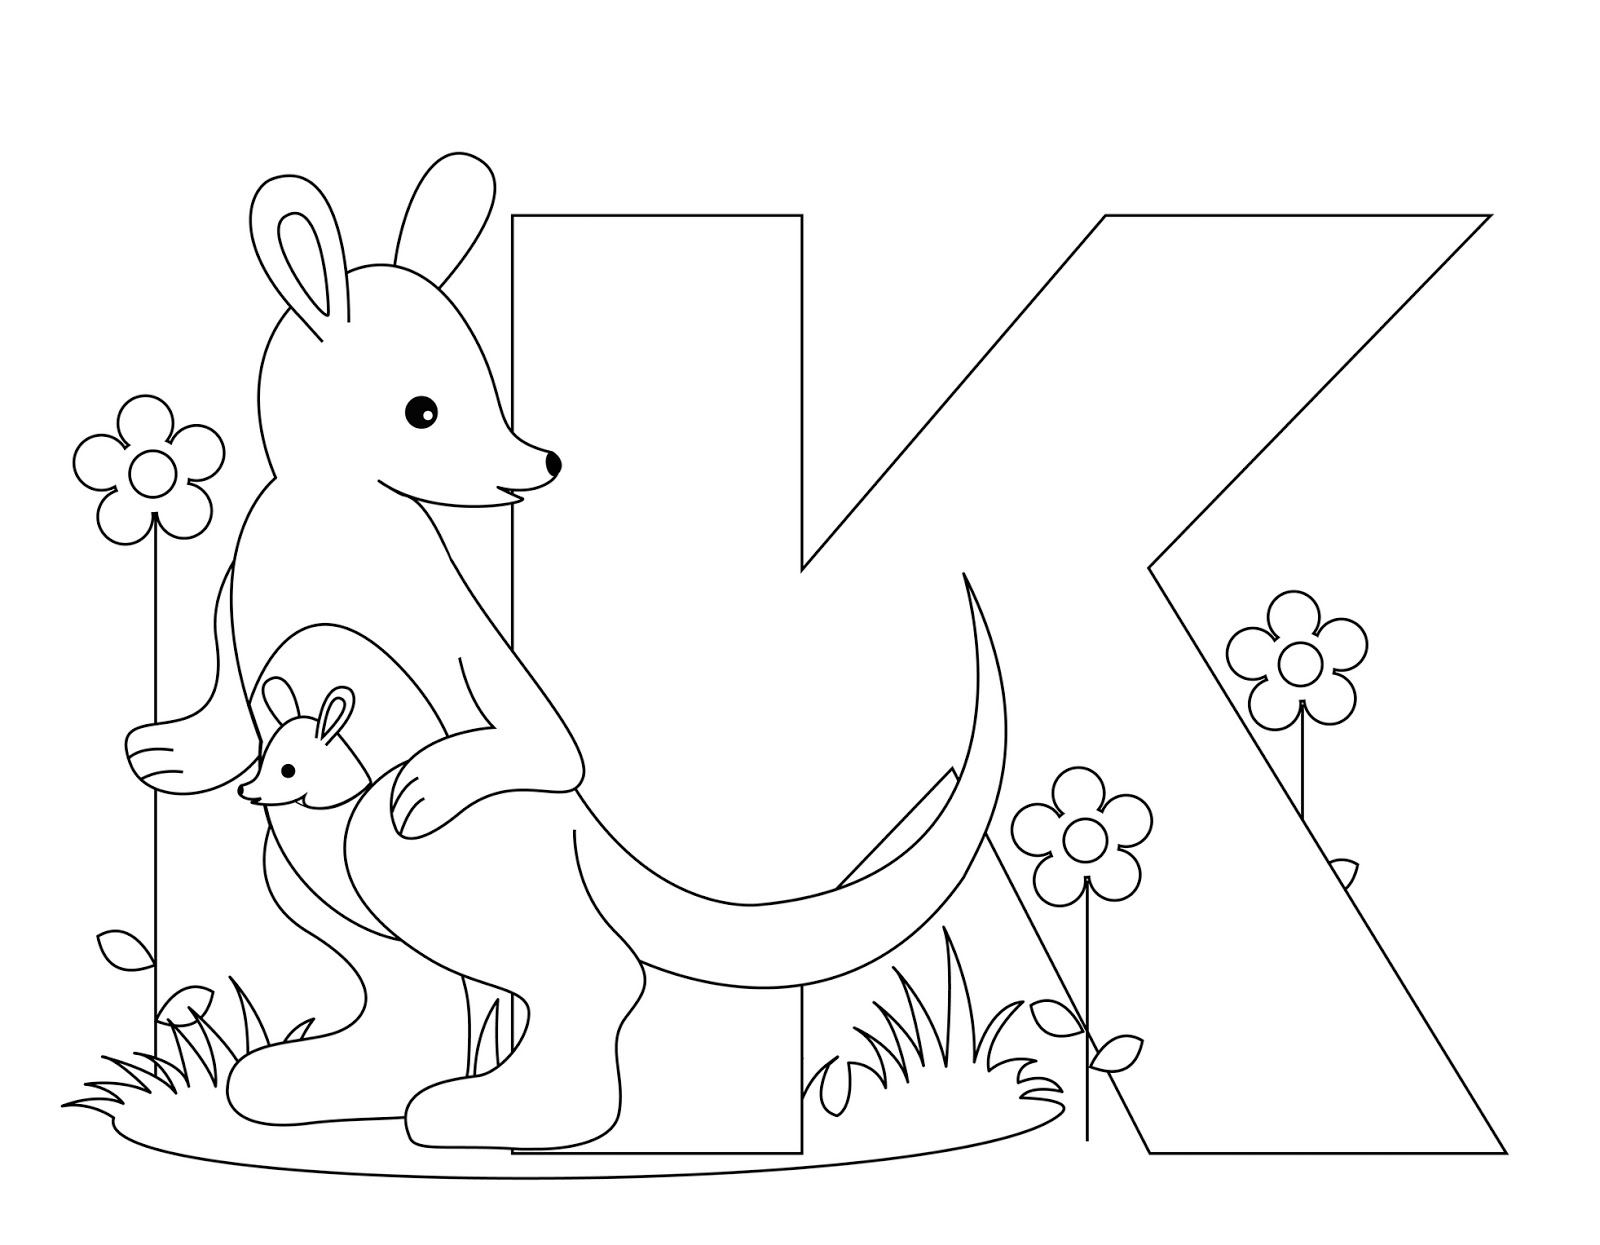 coloring pages for alphalbet - photo#25